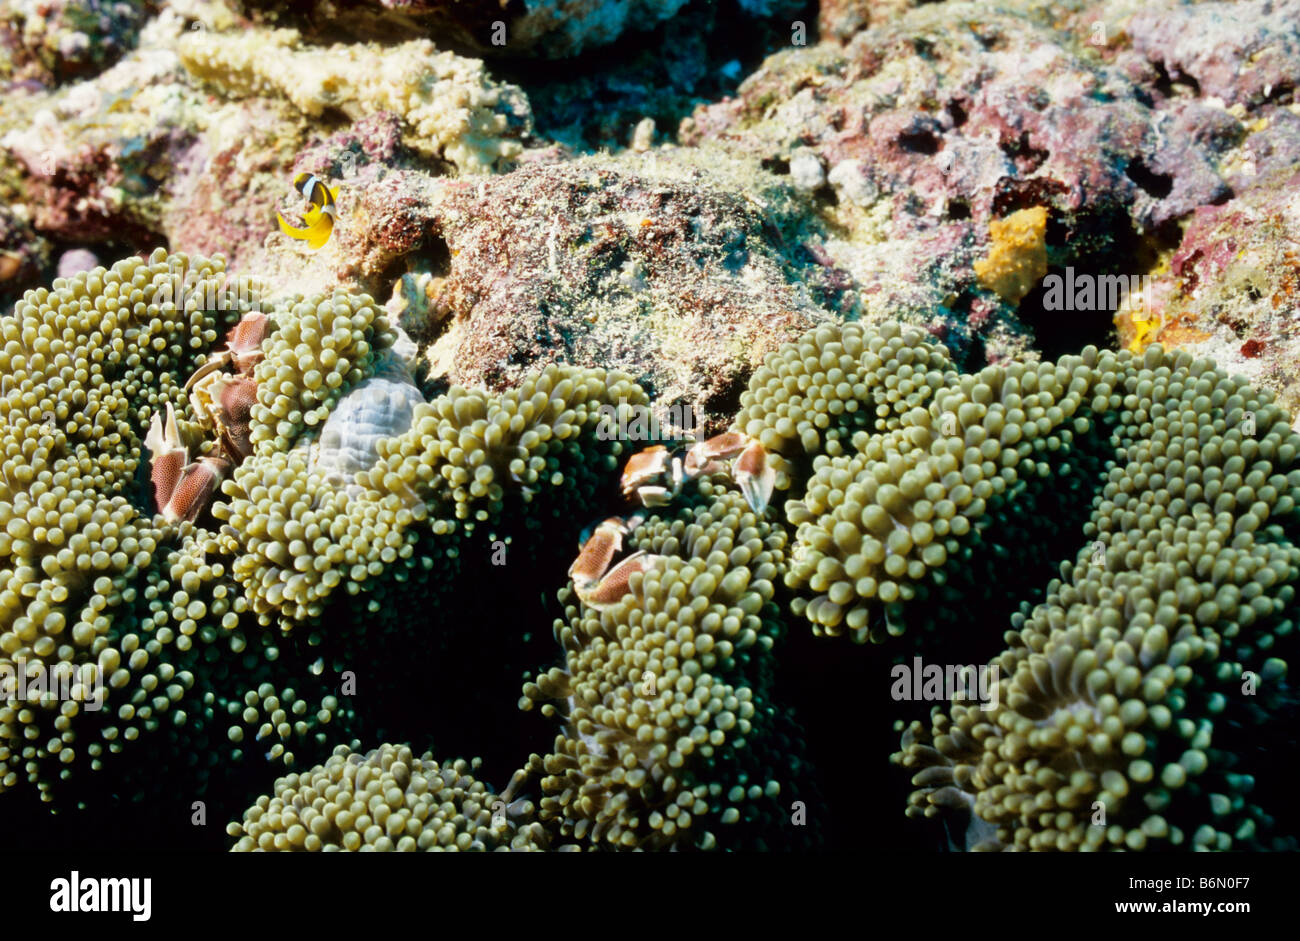 Spotted Porcellanid crabs in their anemone. Neopetrolisthes Maculatus. Malacostraca. Underwater marine life of the - Stock Image